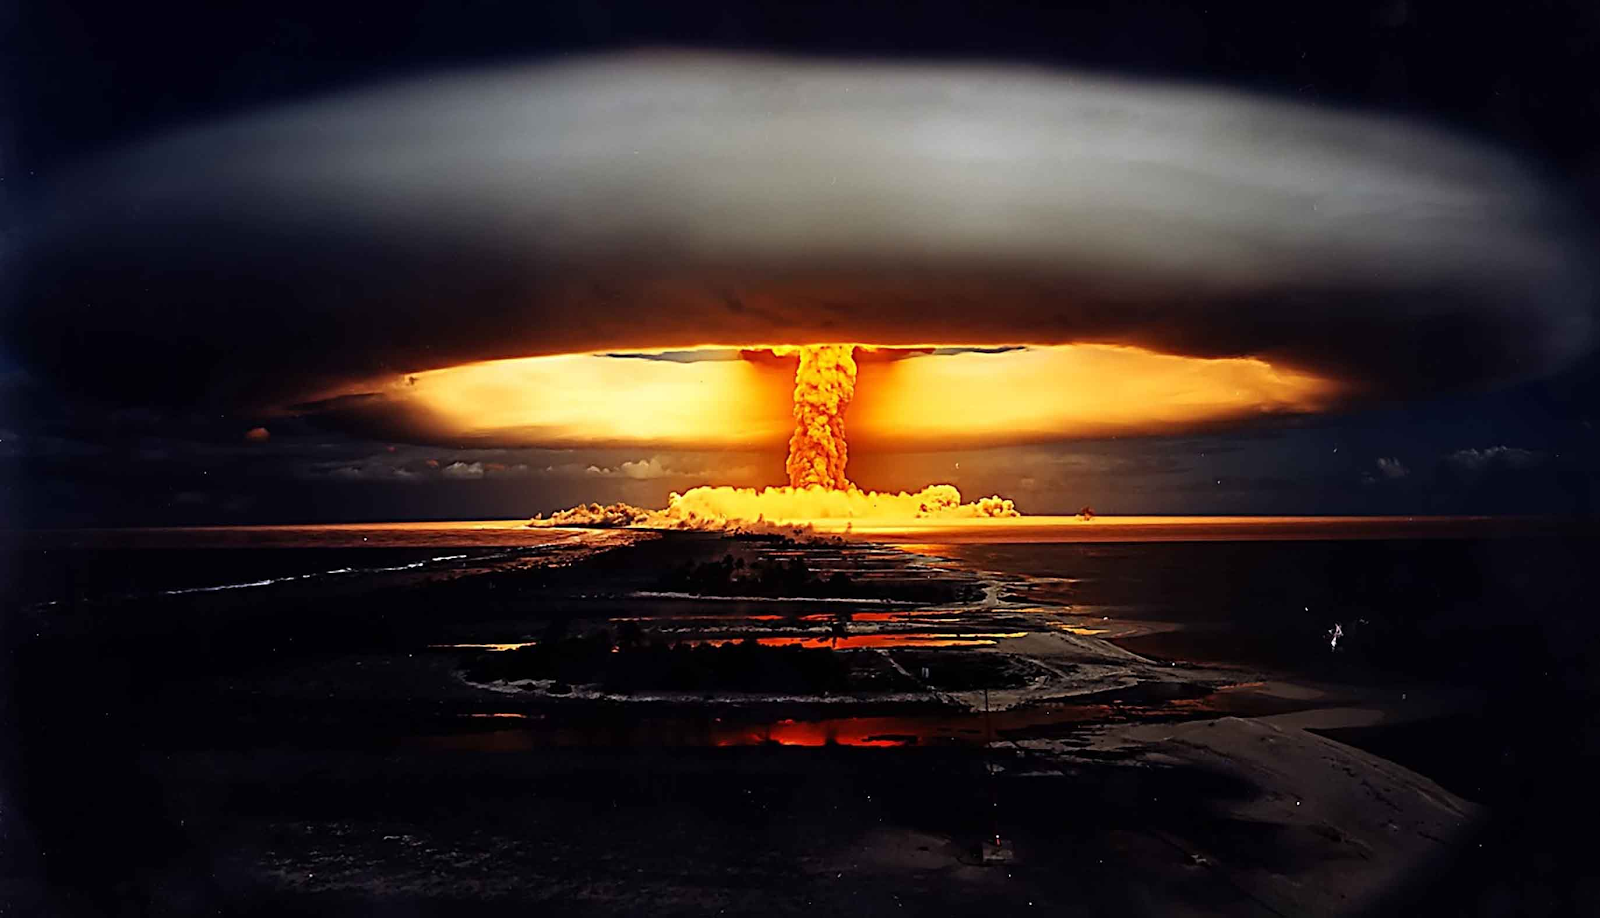 Tsar Bomba - The biggest thermonuclear explosion of the History